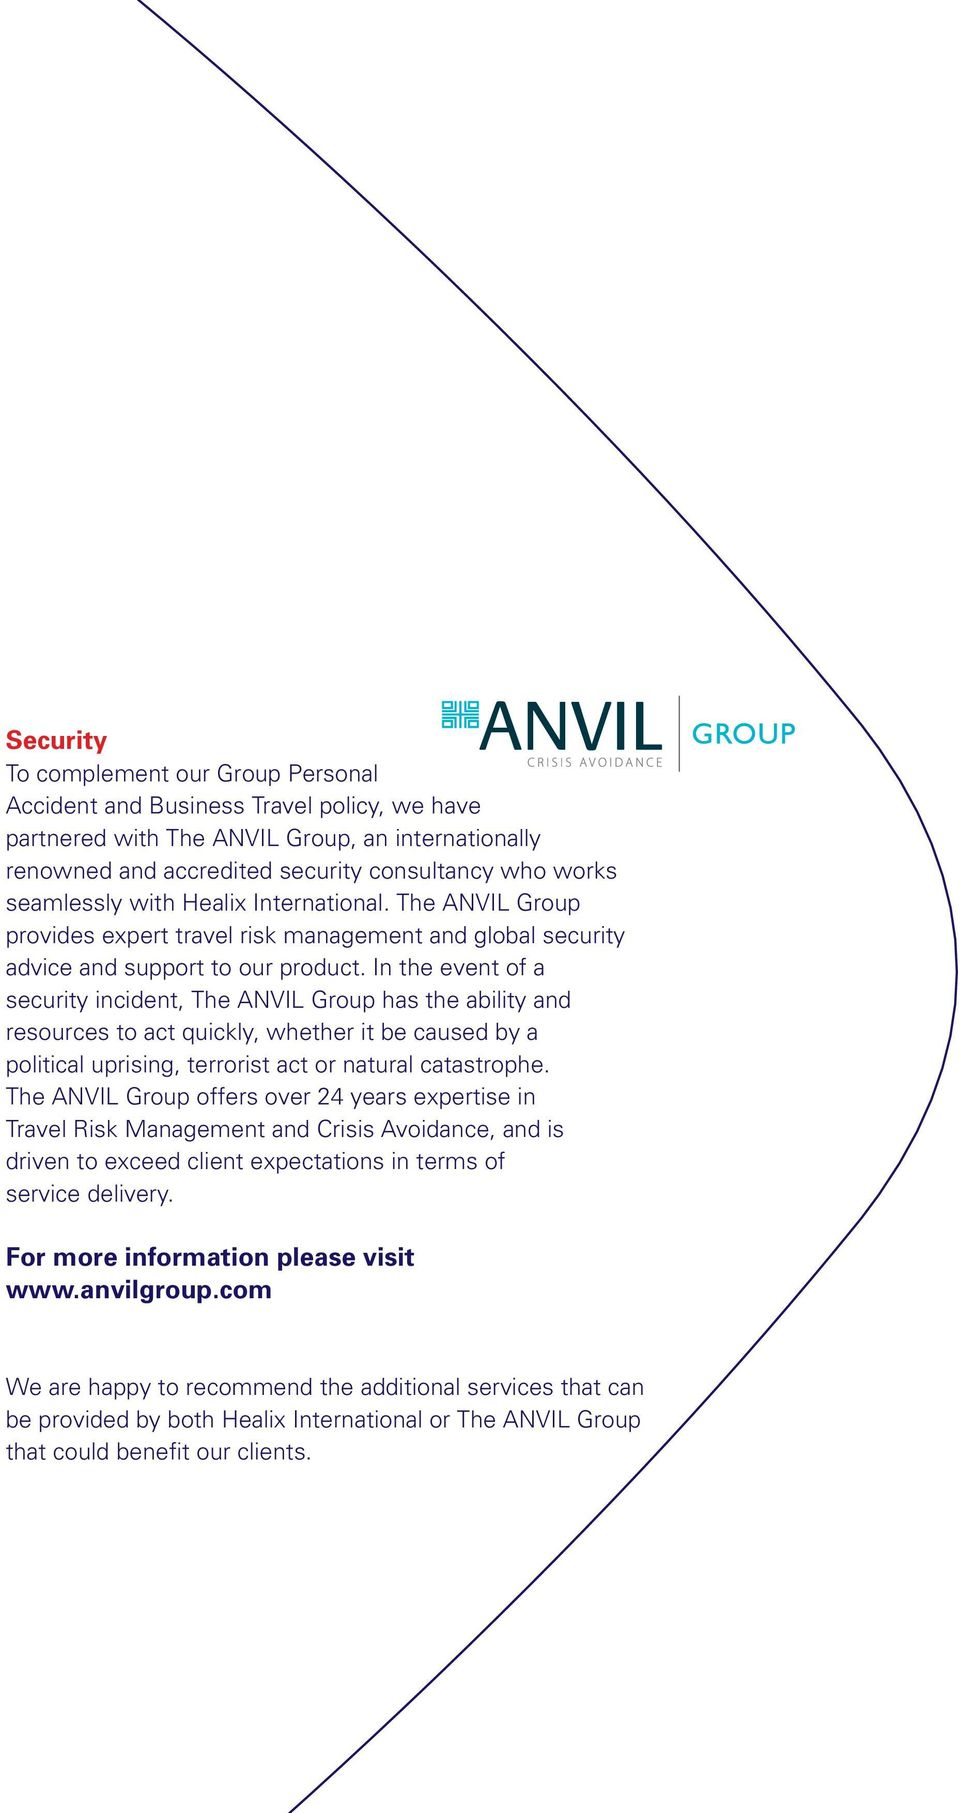 In the event of a security incident, The ANVIL Group has the ability and resources to act quickly, whether it be caused by a political uprising, terrorist act or natural catastrophe.